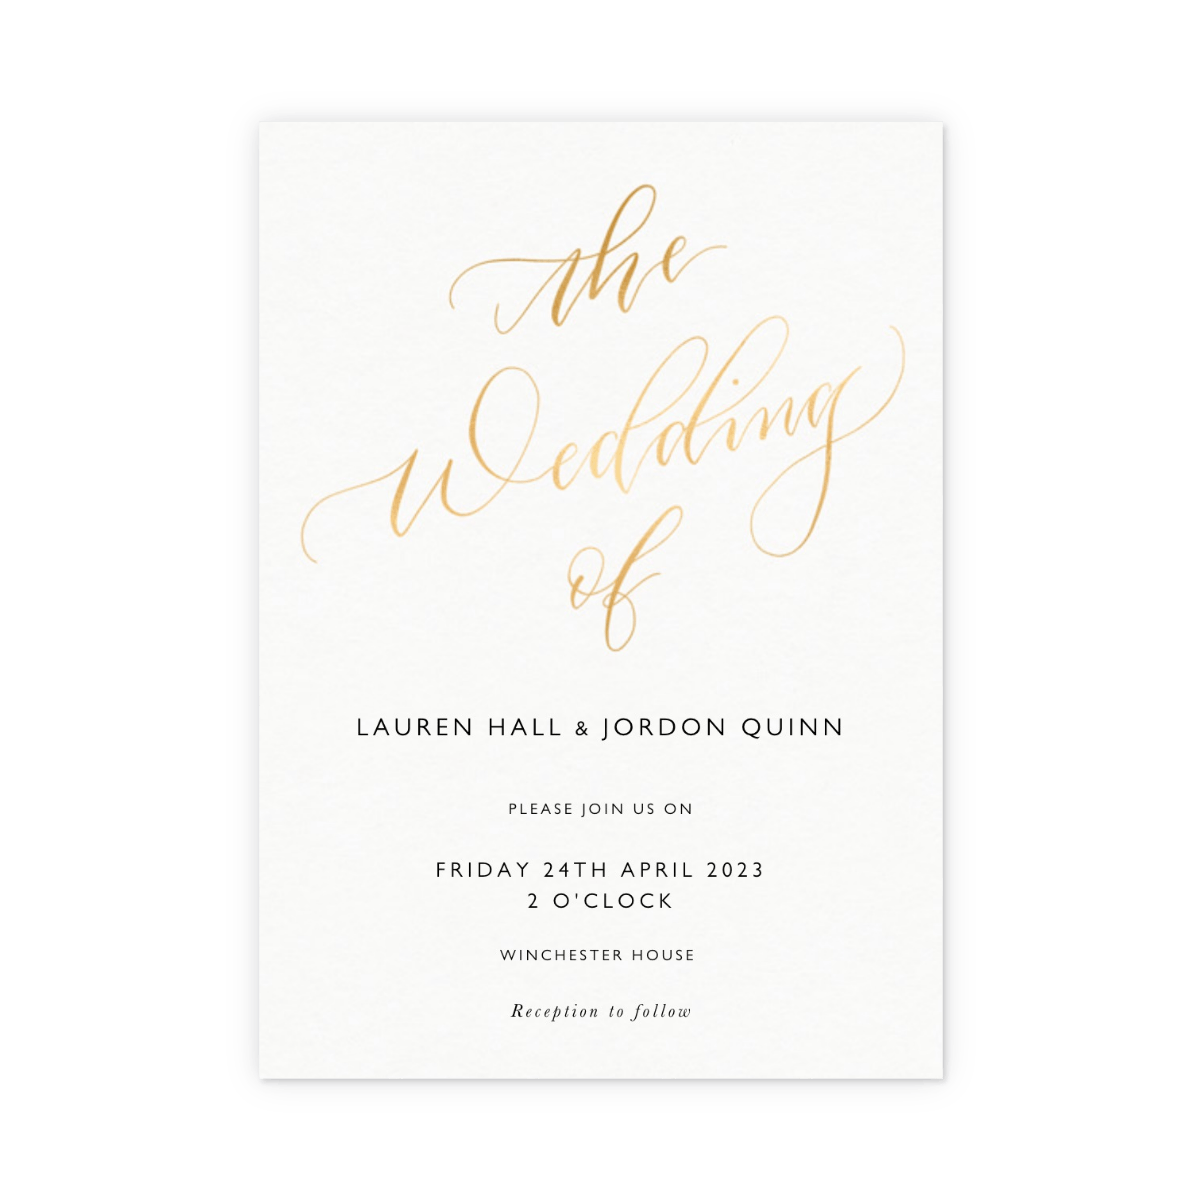 Https%3a%2f%2fwww.papier.com%2fproduct image%2f68588%2f4%2fthe wedding of calligraphy 16264 avant 1552573811.png?ixlib=rb 1.1